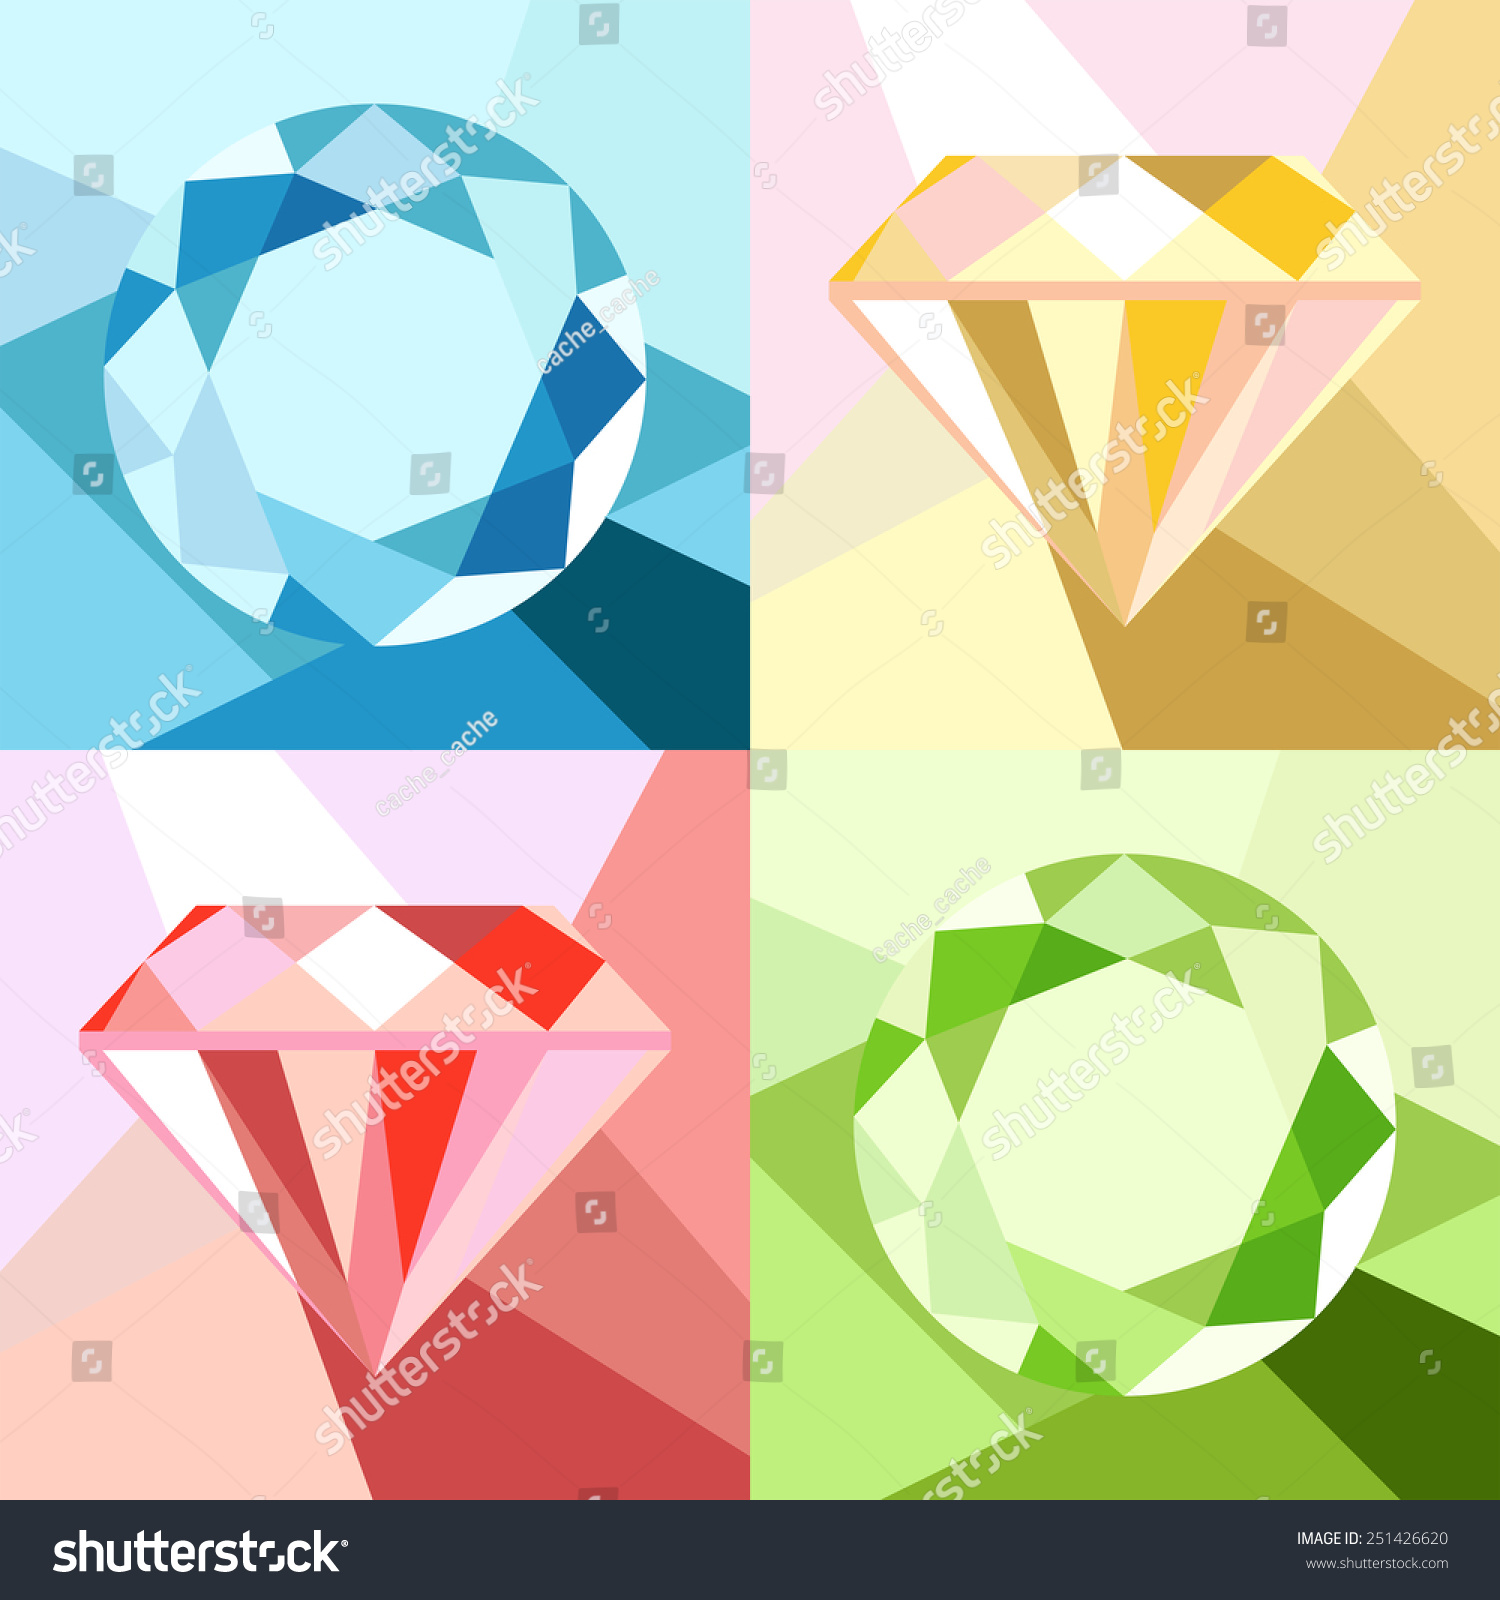 pencil and color polygon clipart in art explore diamond